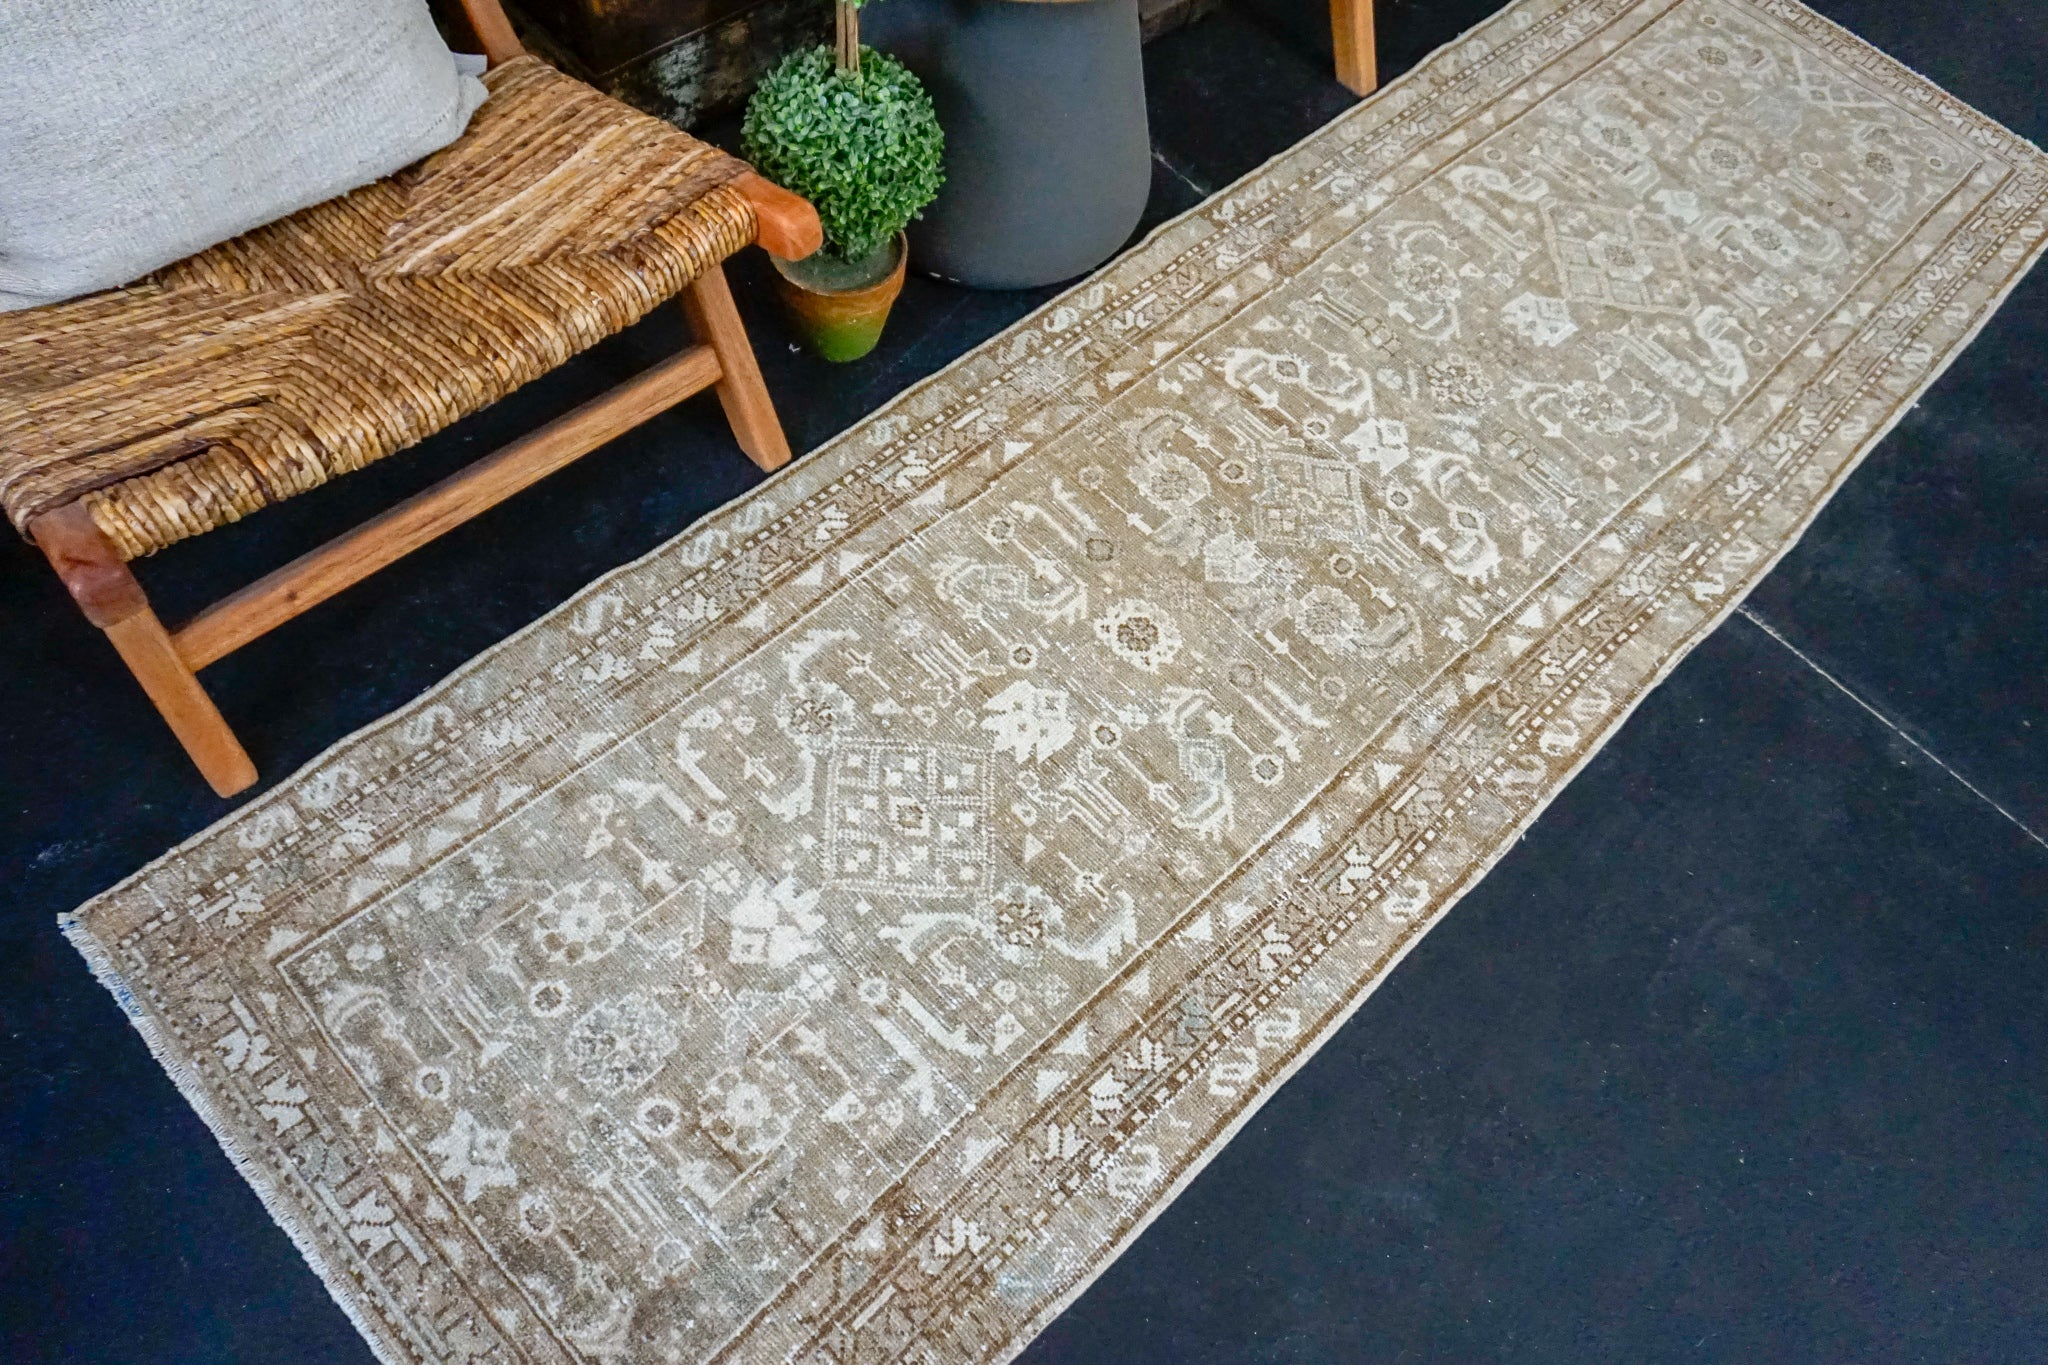 Sold EG 2/18*2'8 x 8'7 Classic Vintage Runner Muted Brown + Light Beige & Gray Available 2/20*